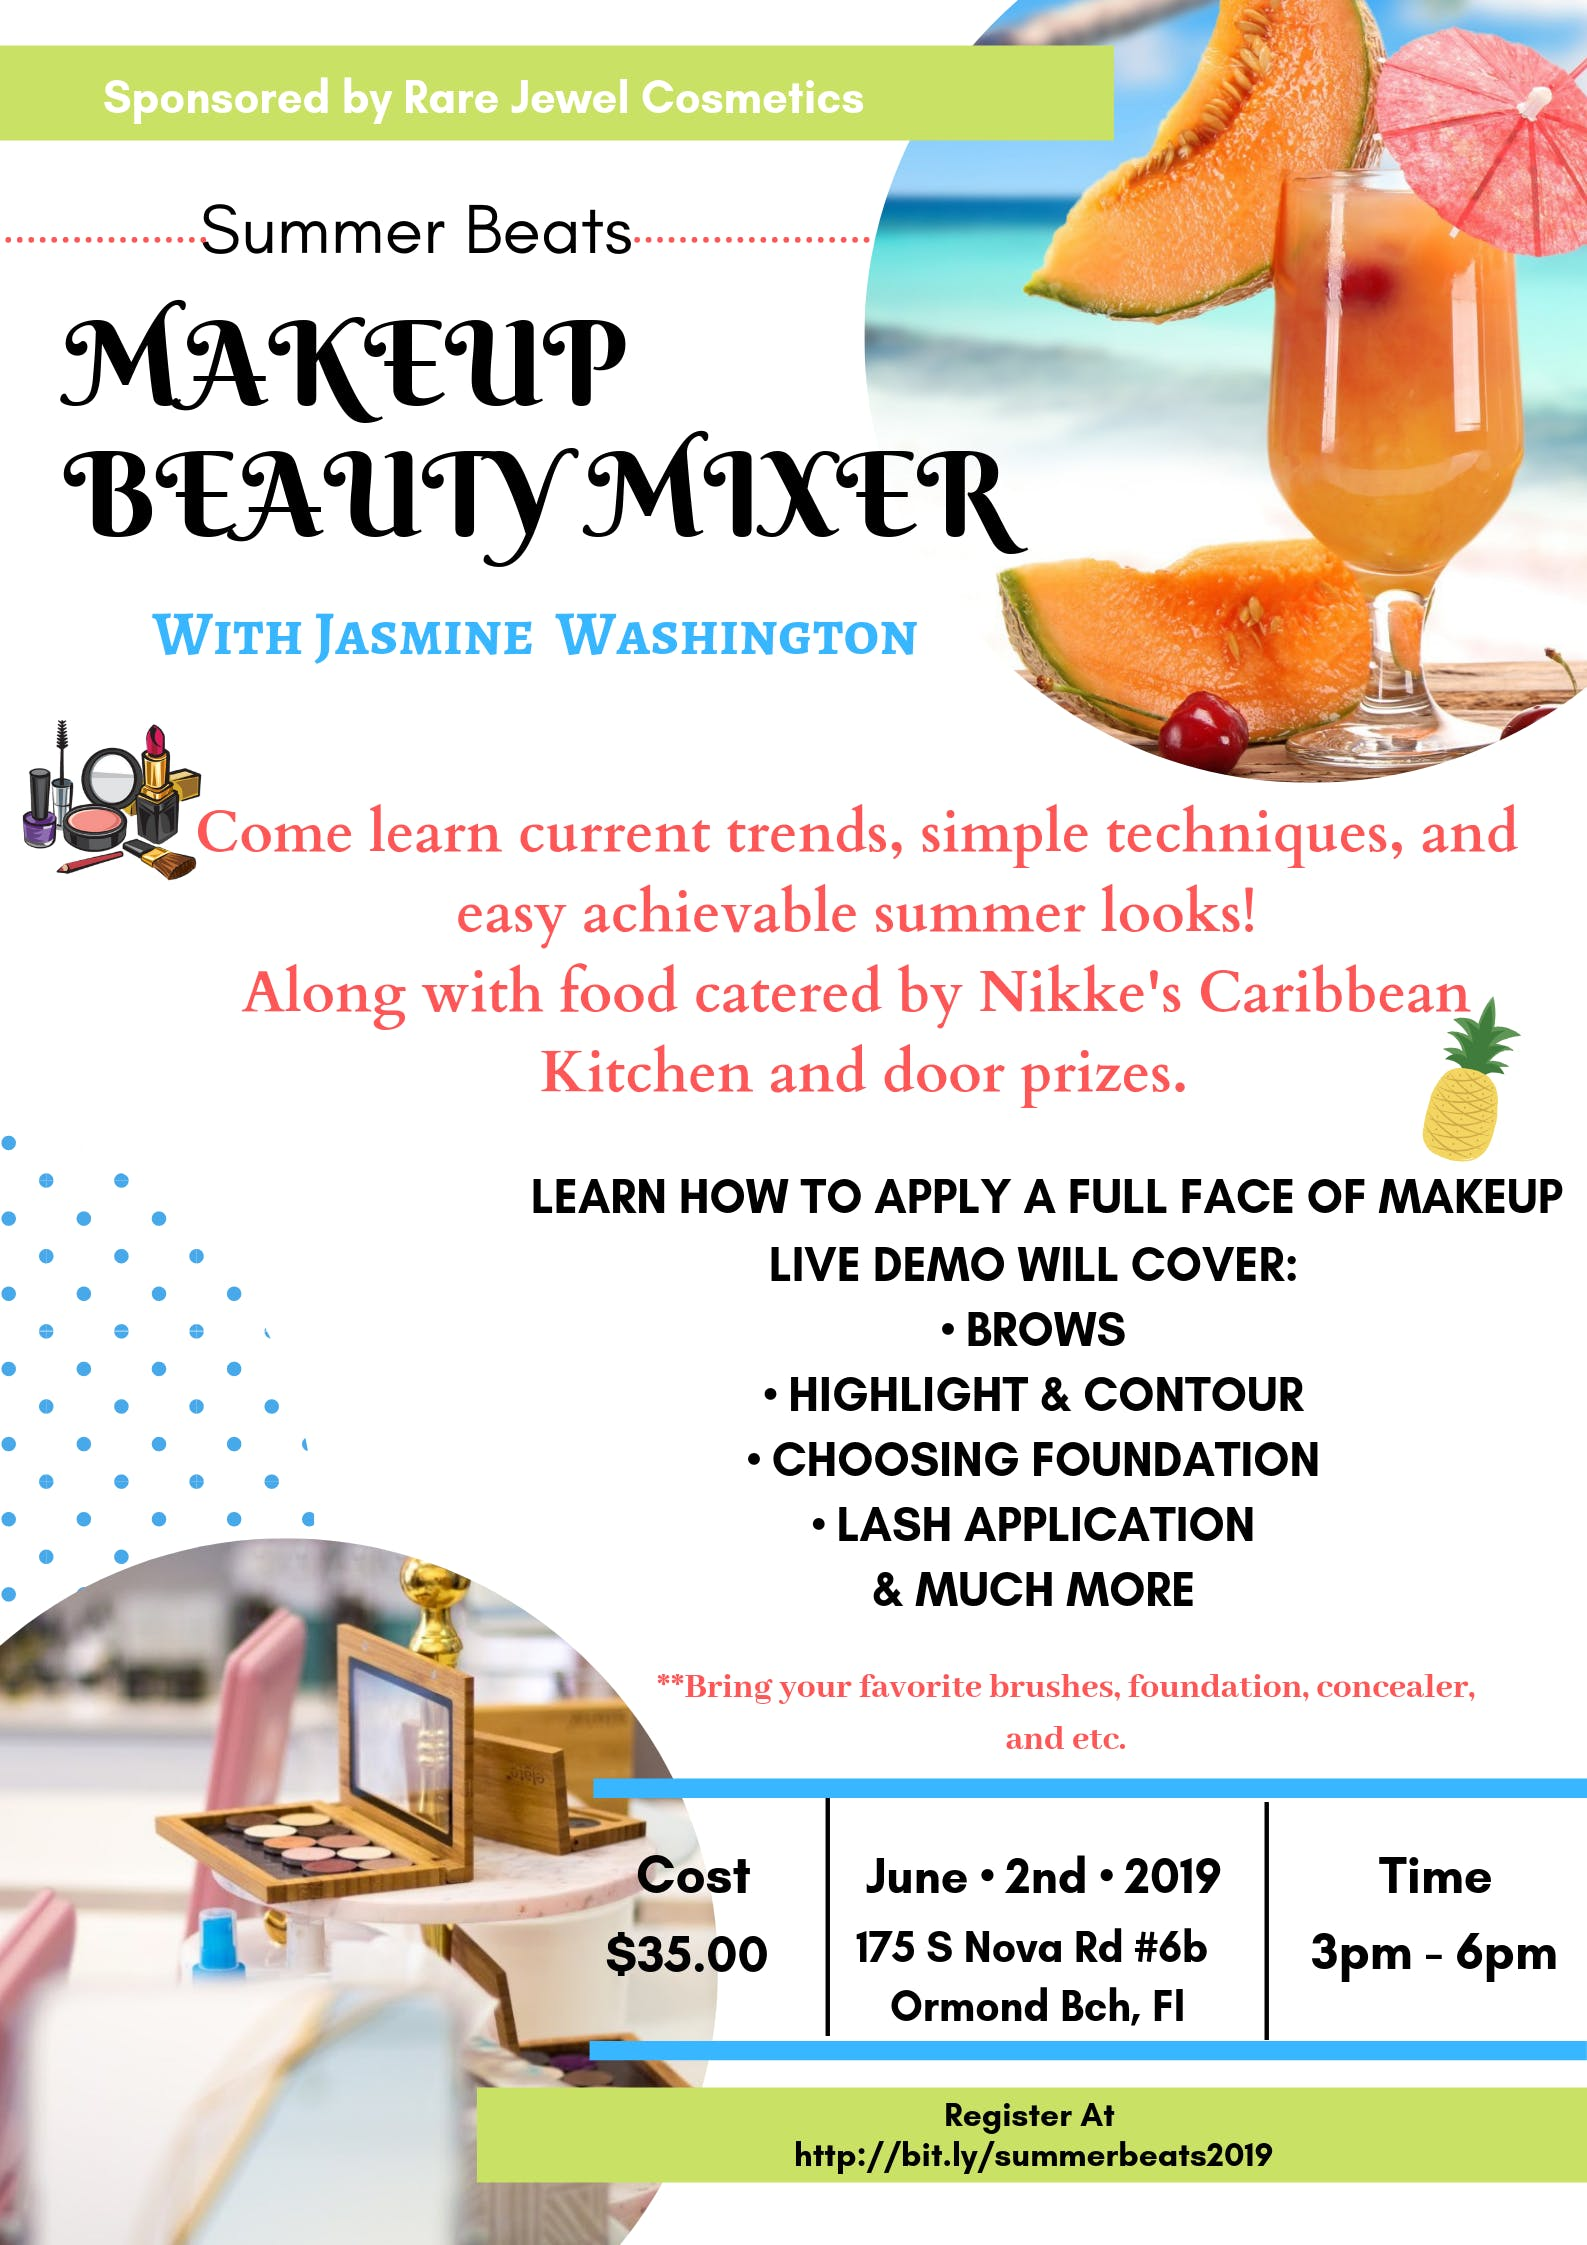 Summer Beats Makeup Beauty Mixer, Daytona Beach FL - Jun 2